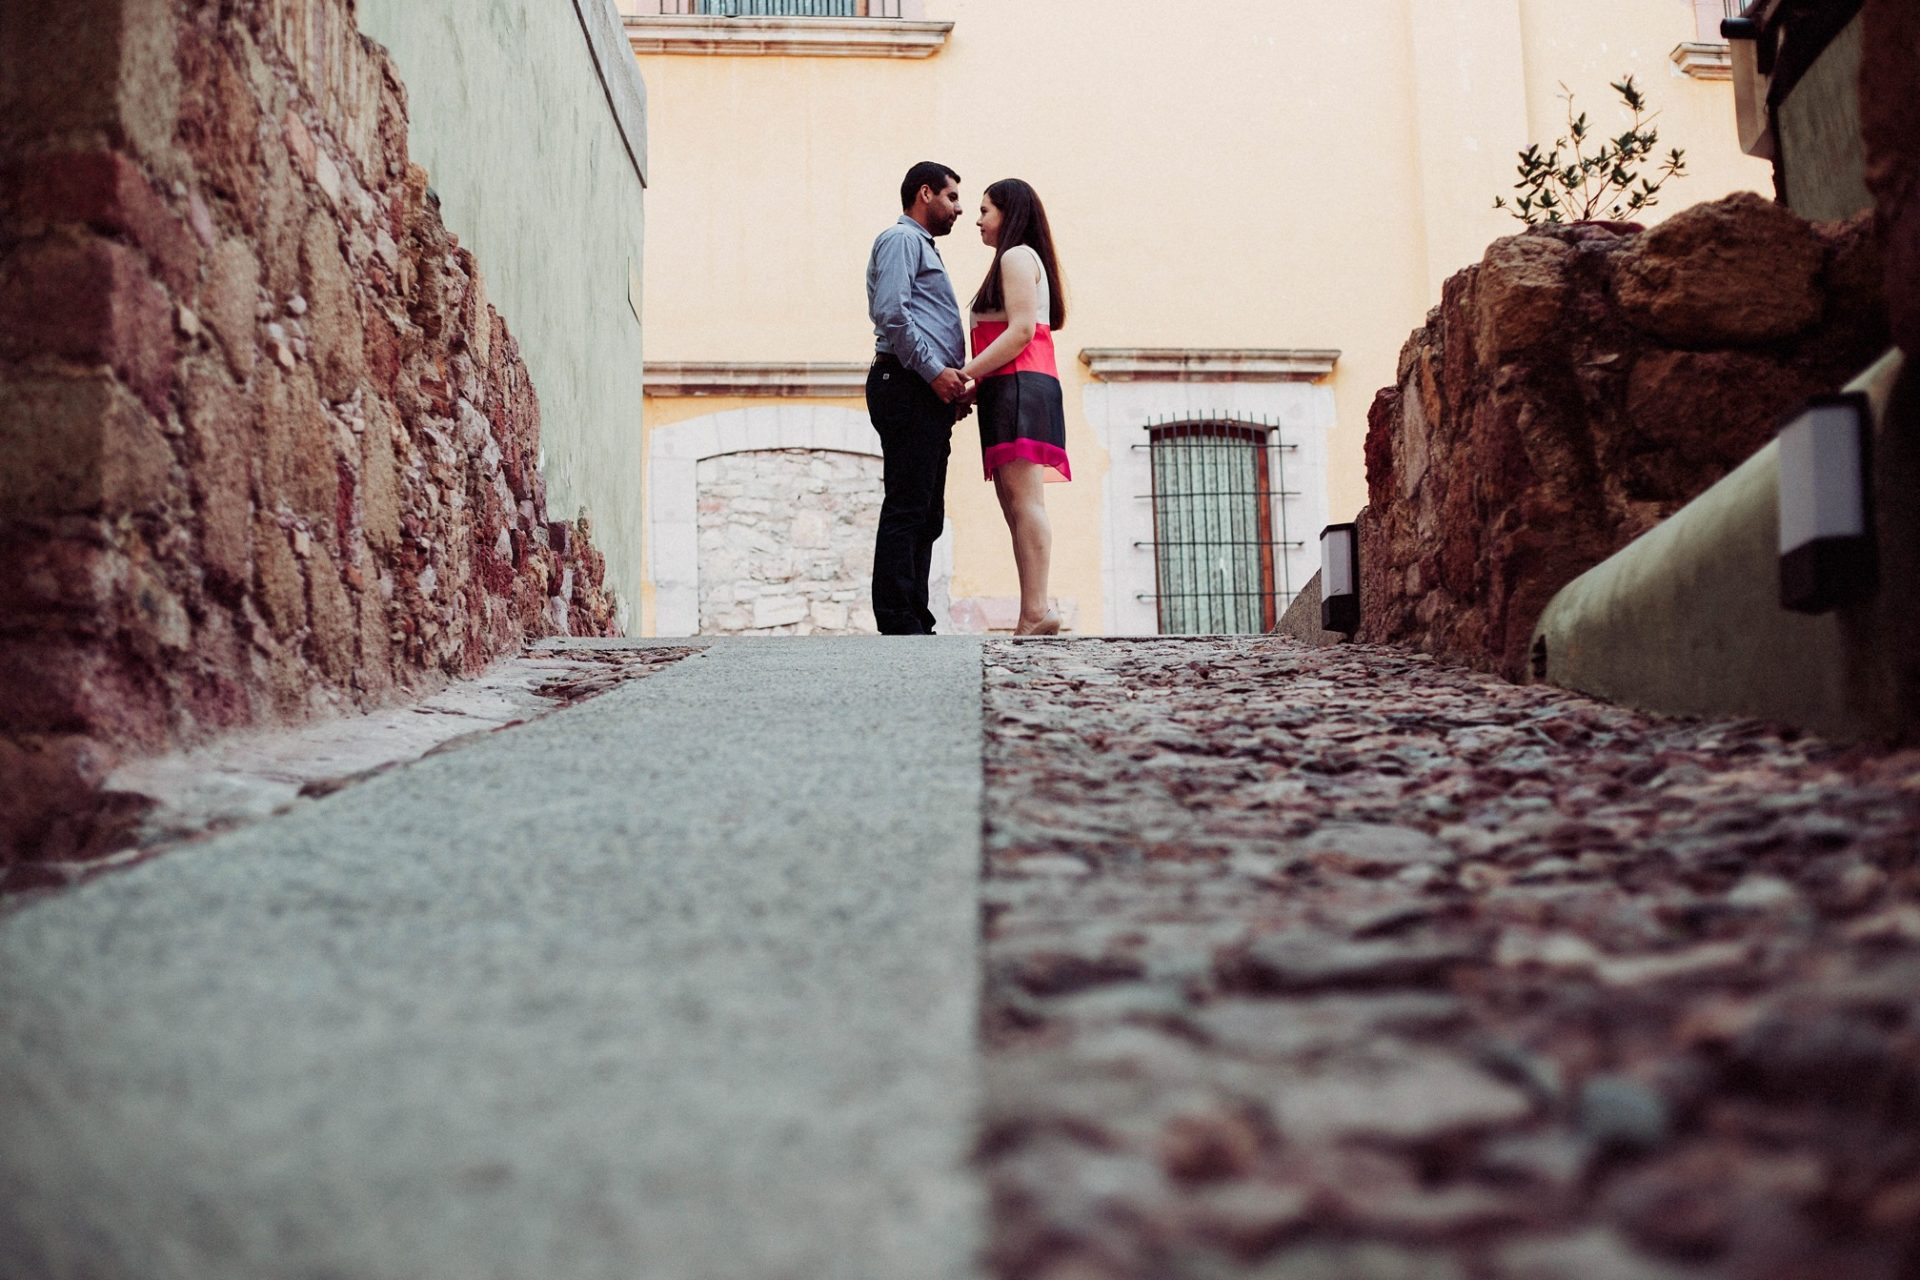 save_the_date_casual_zacatecas_fotografo_profesional_centro_historico-33